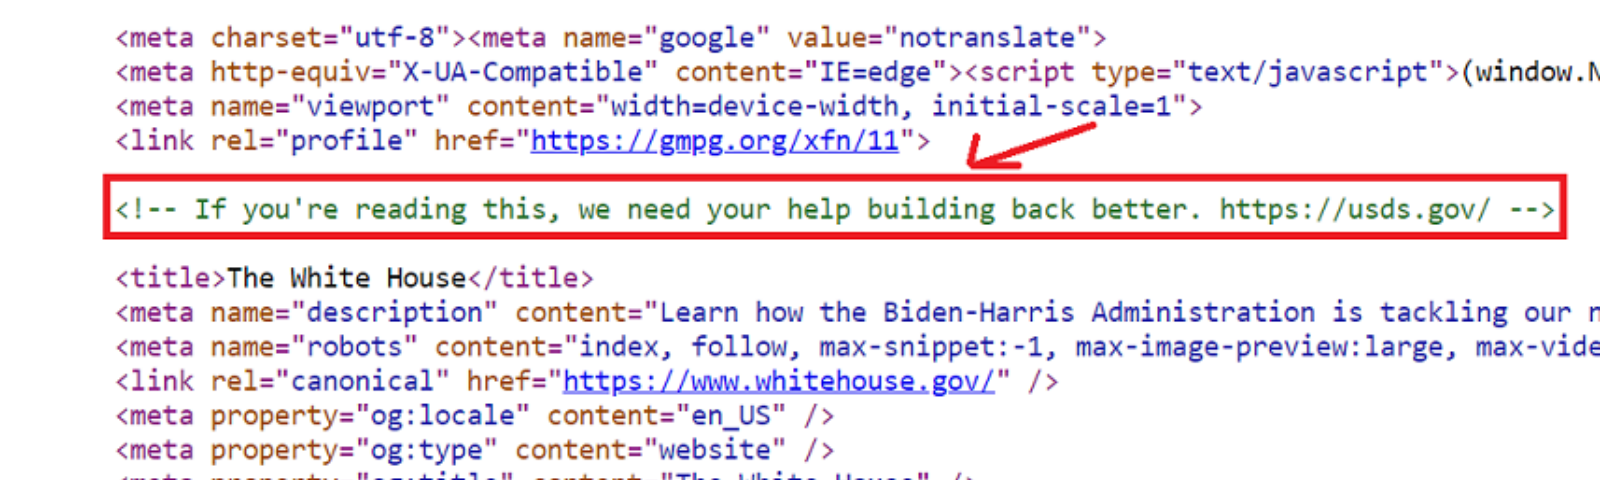 The technical team has hidden this secret message in the source code of the new White House website.